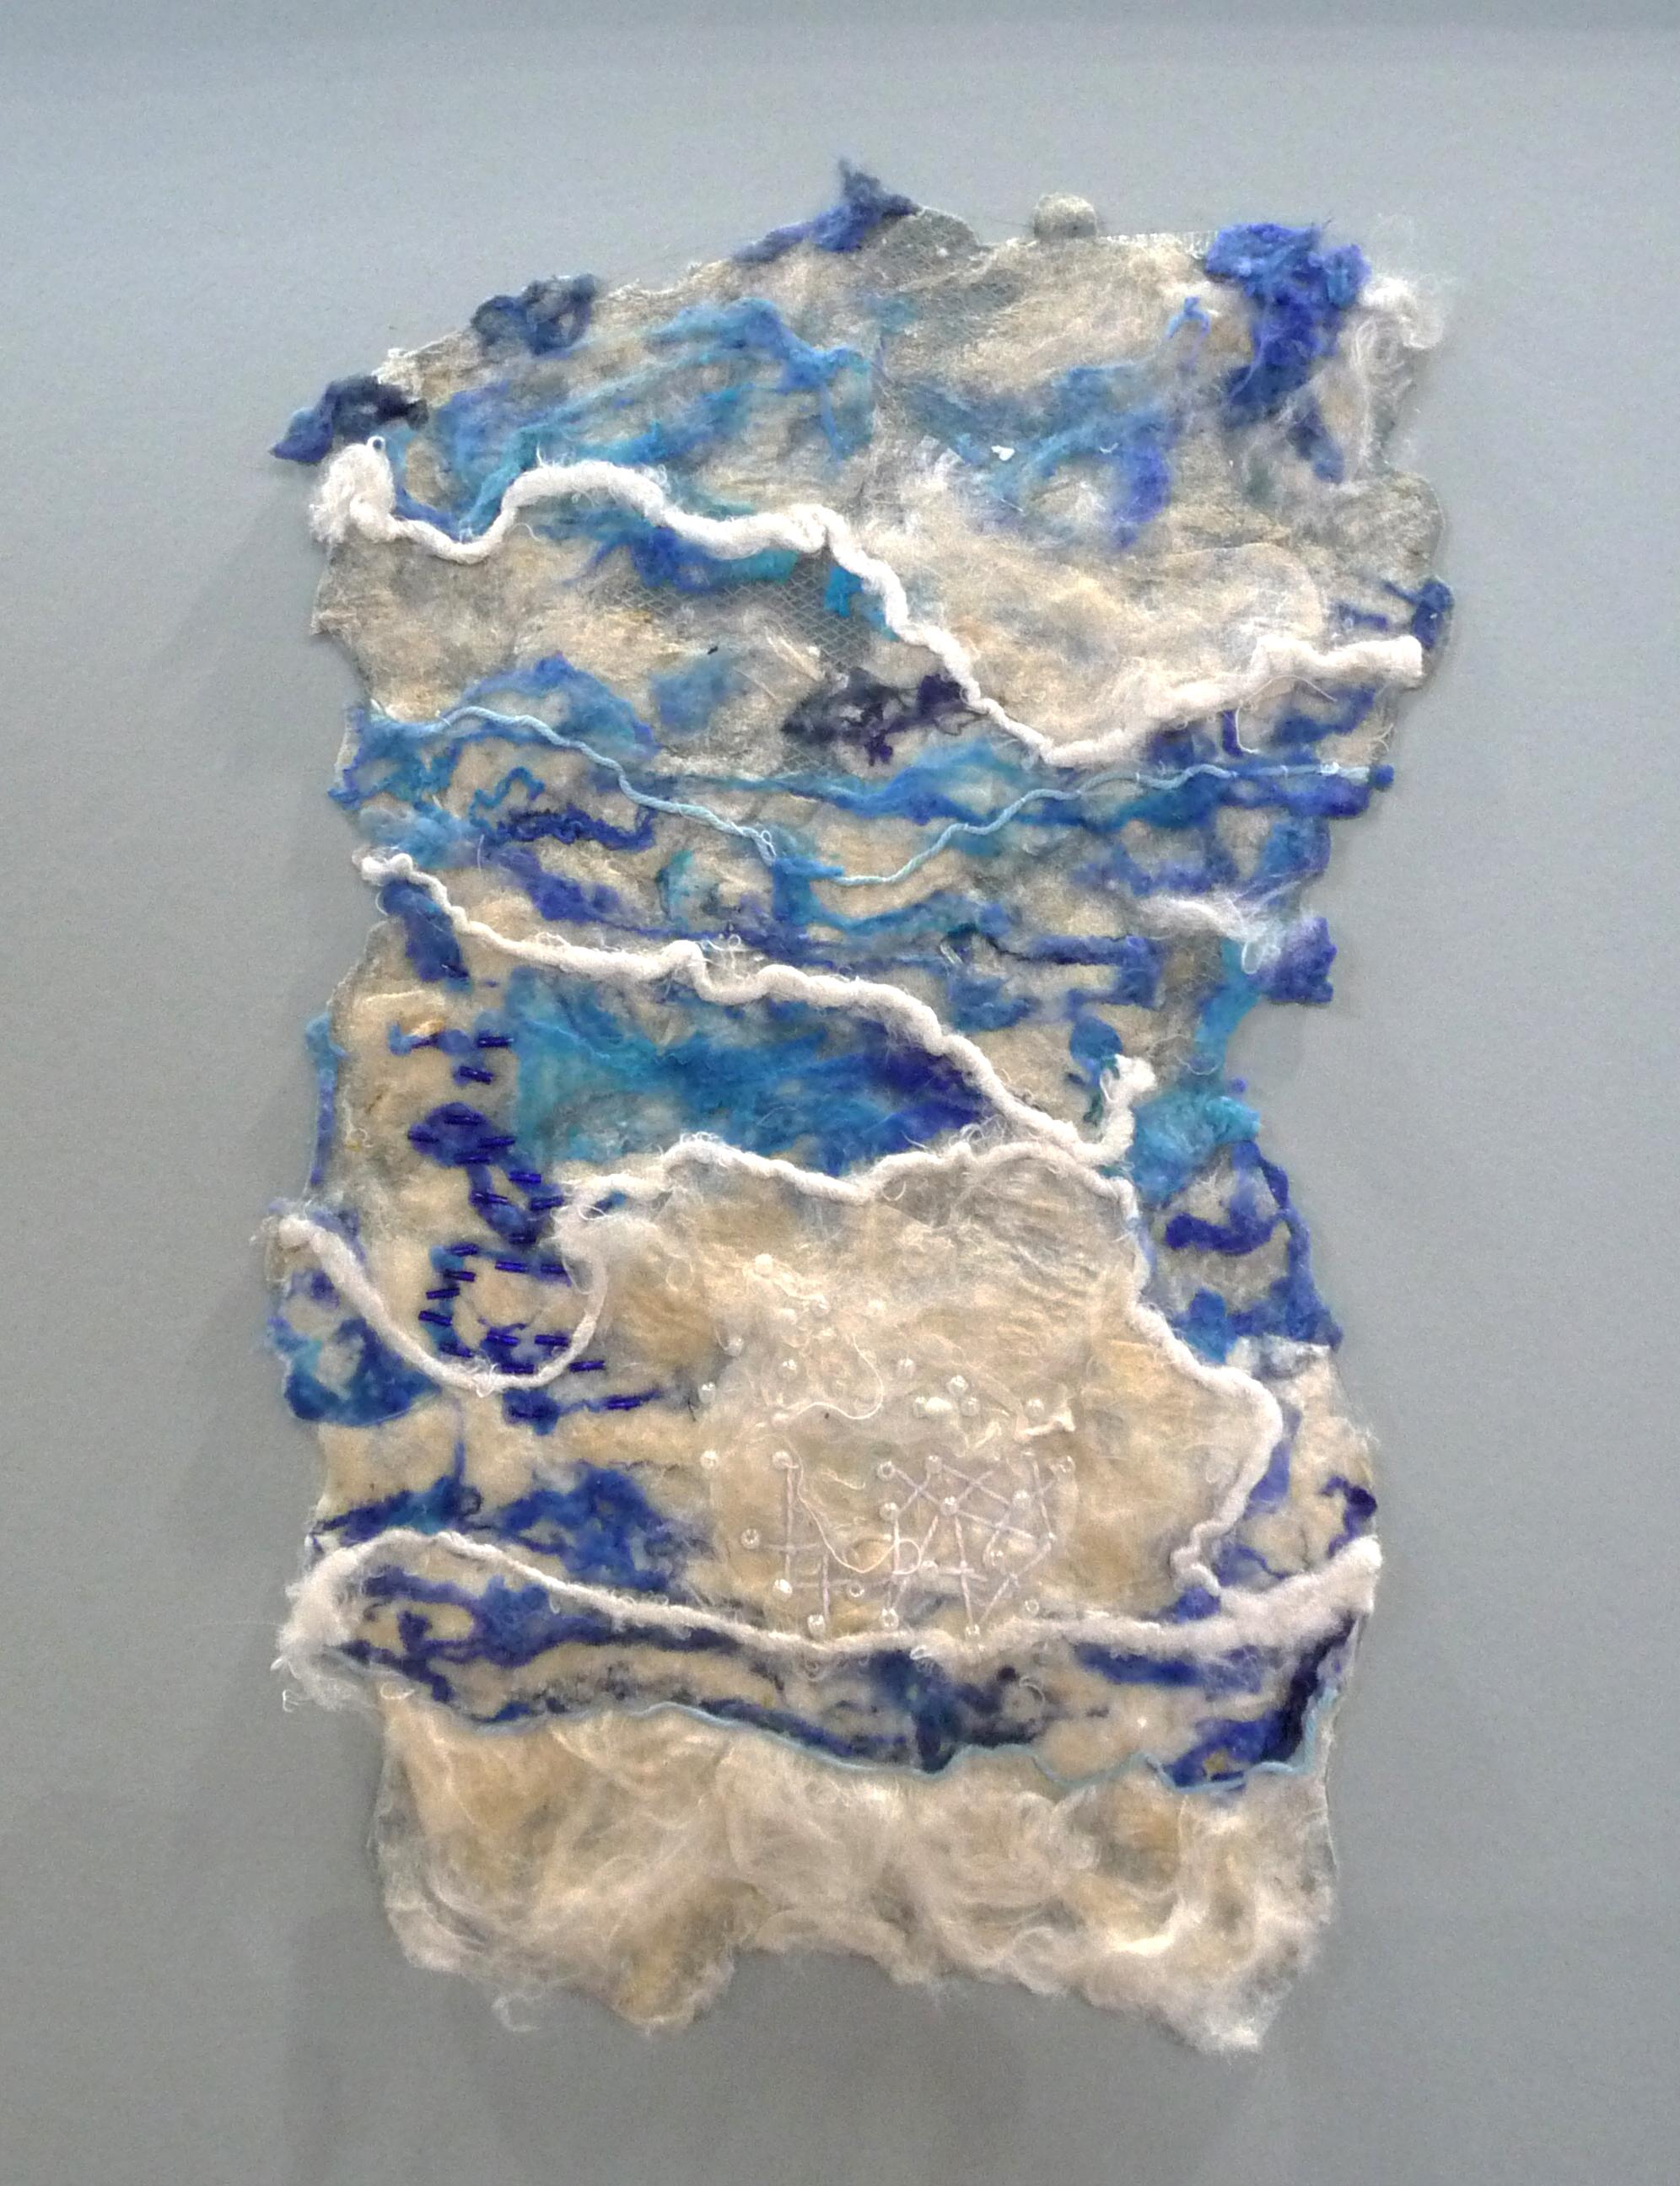 BLUE SKIES WITH WHITE CLOUDS, by Mary Southern, hand and machine embroidered handmade silk paper embellished with pearls